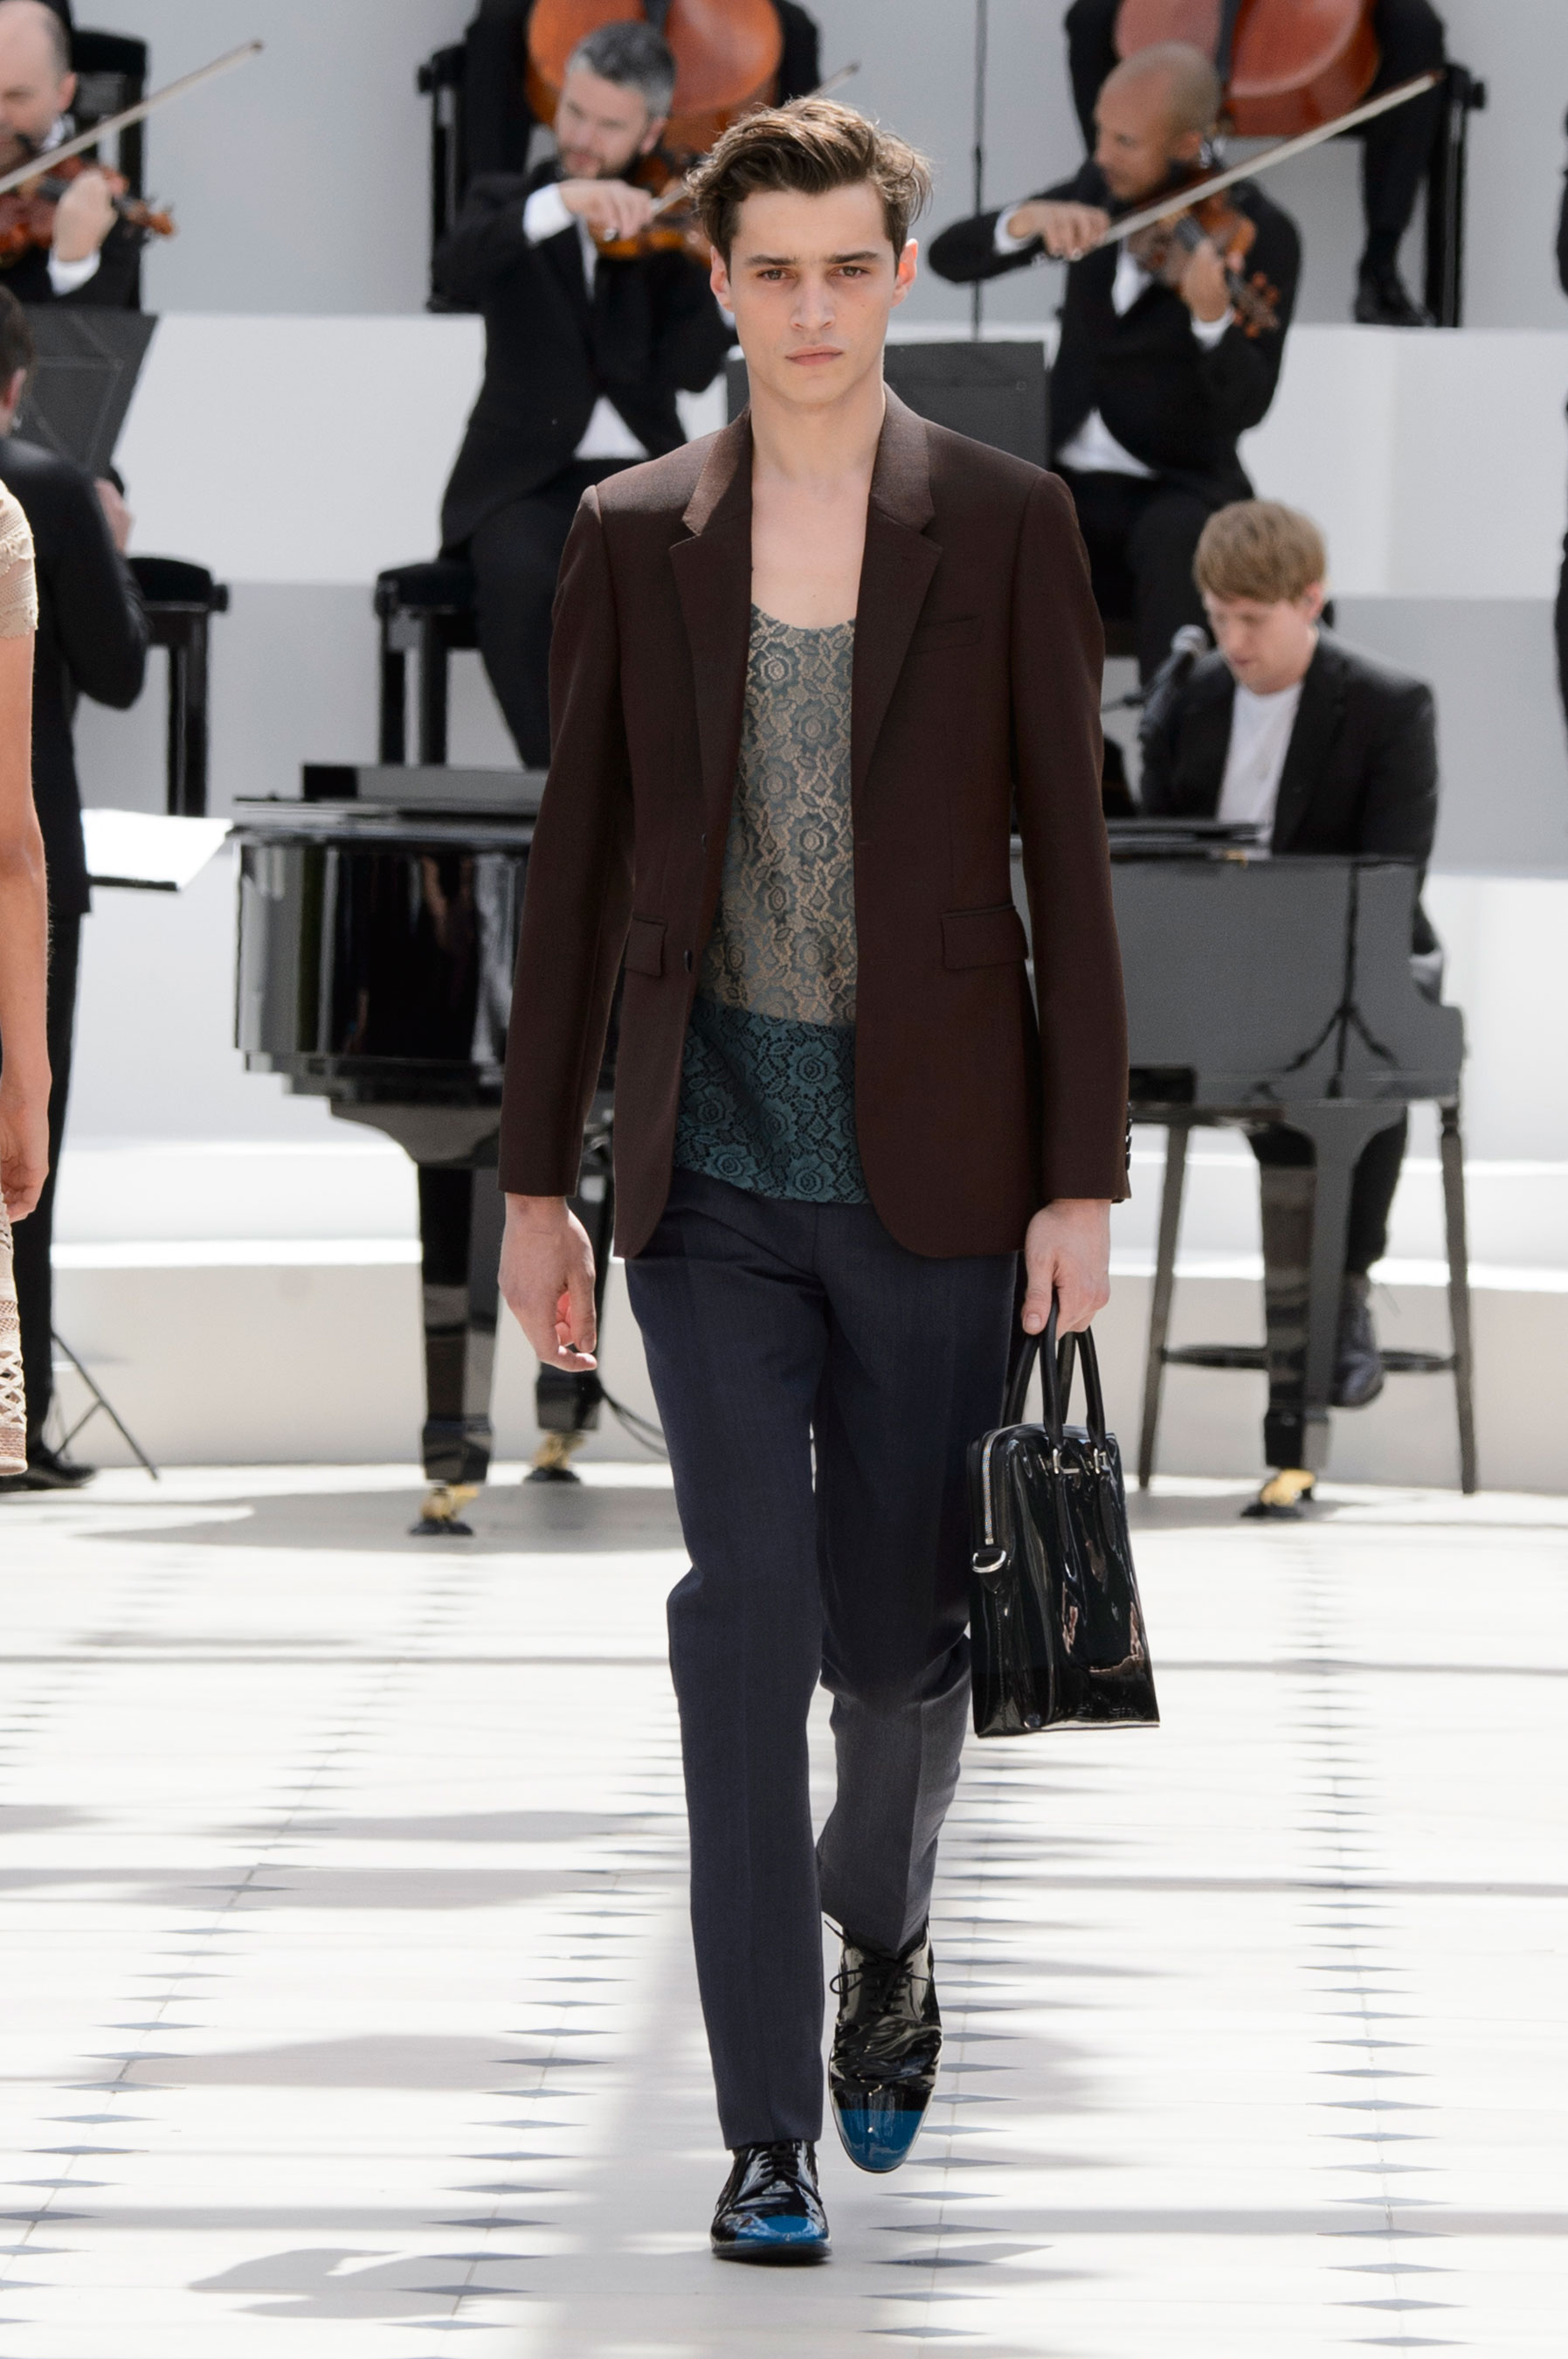 Burberry Prorsum Spring/Summer 2016 | London Collections: Men